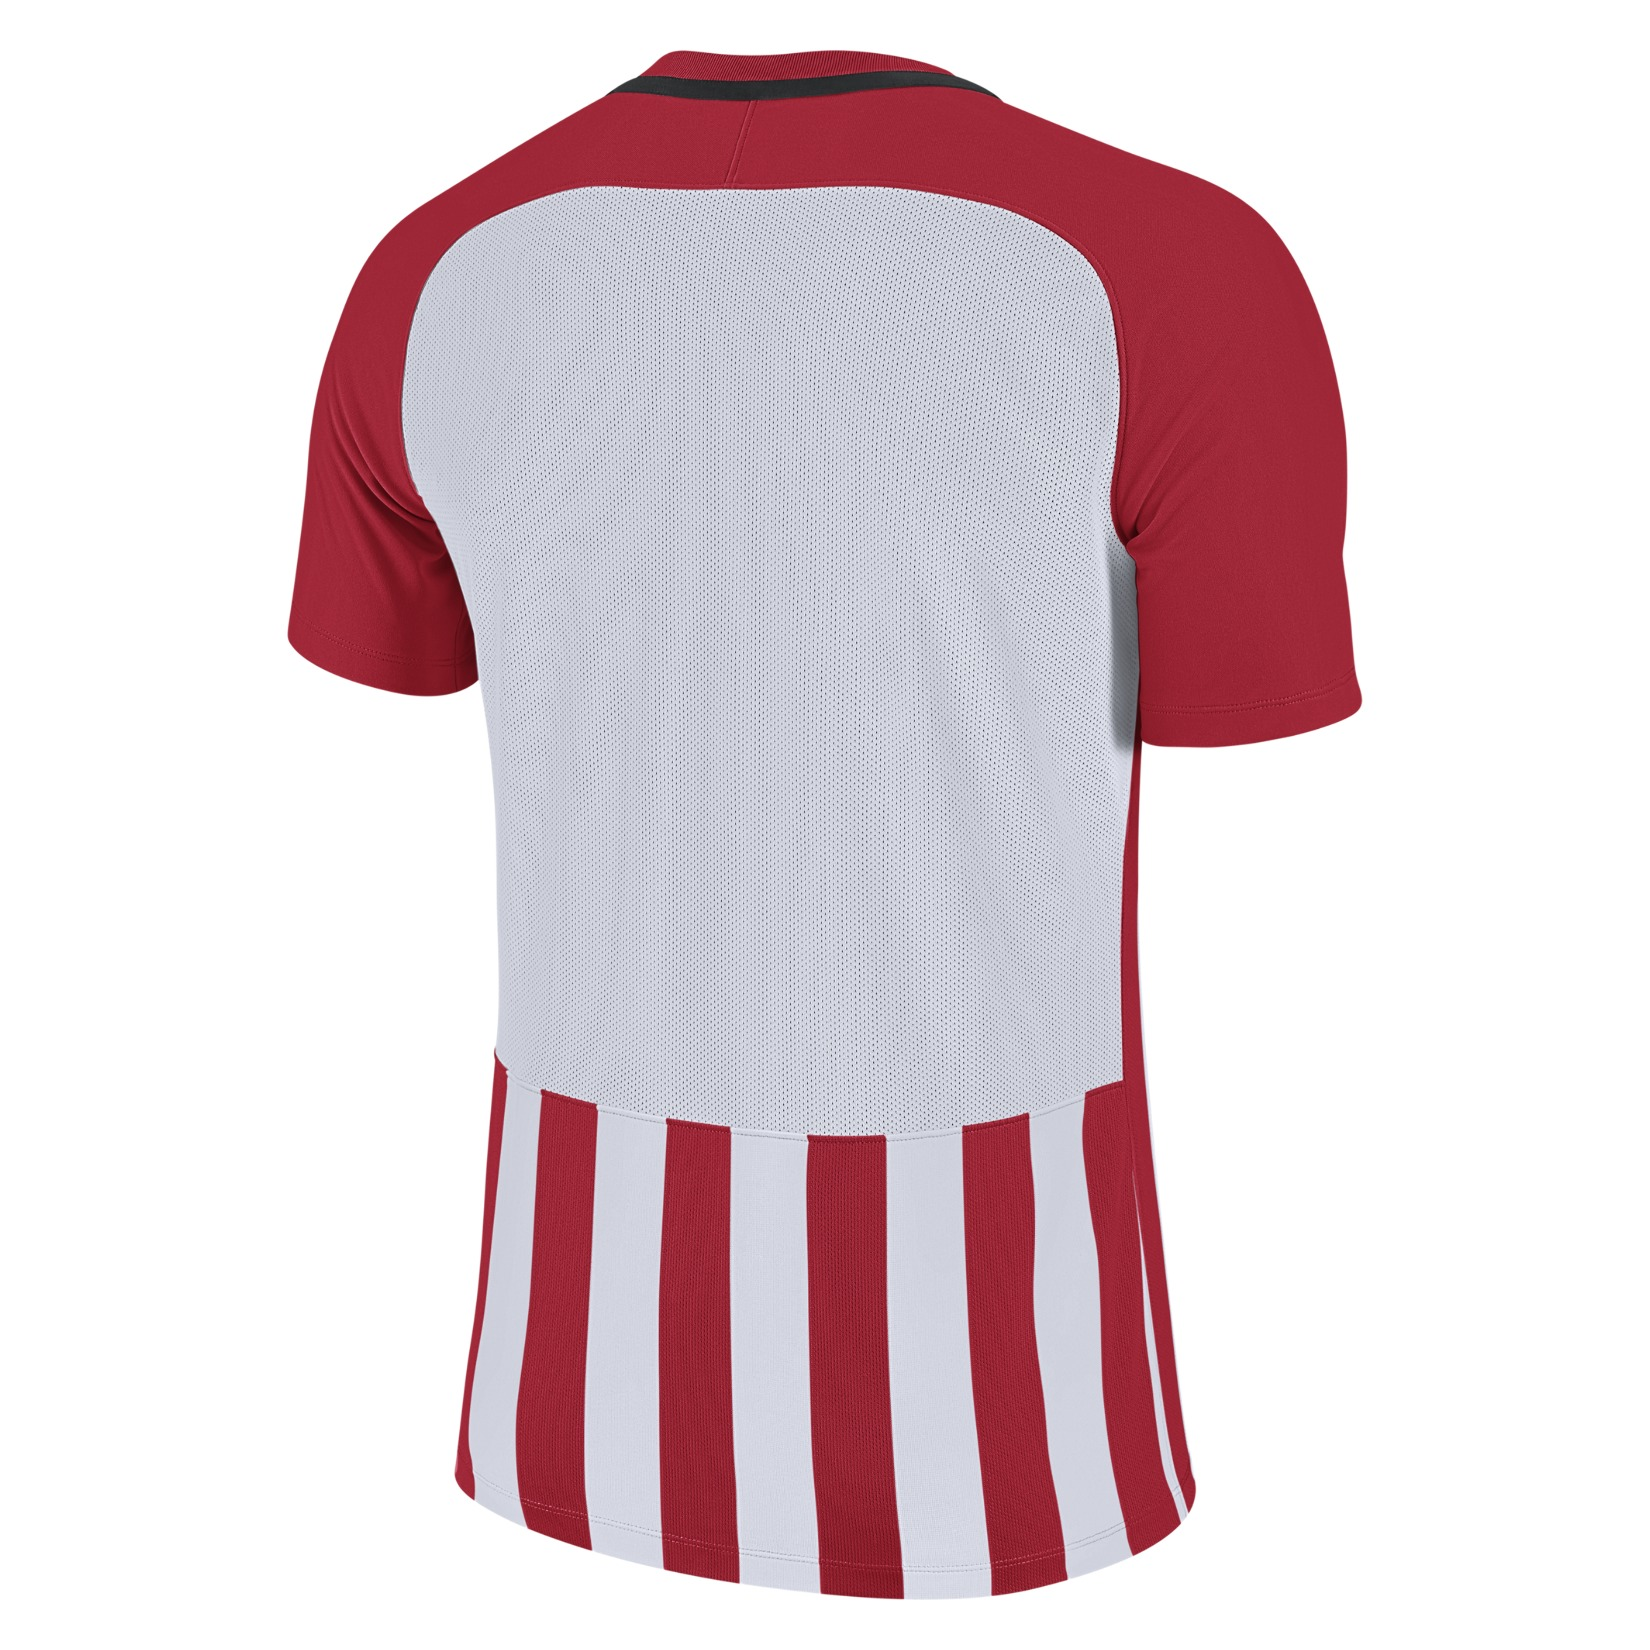 Nike Striped Division III Short Sleeve Shirt University Red-White-Black-Black